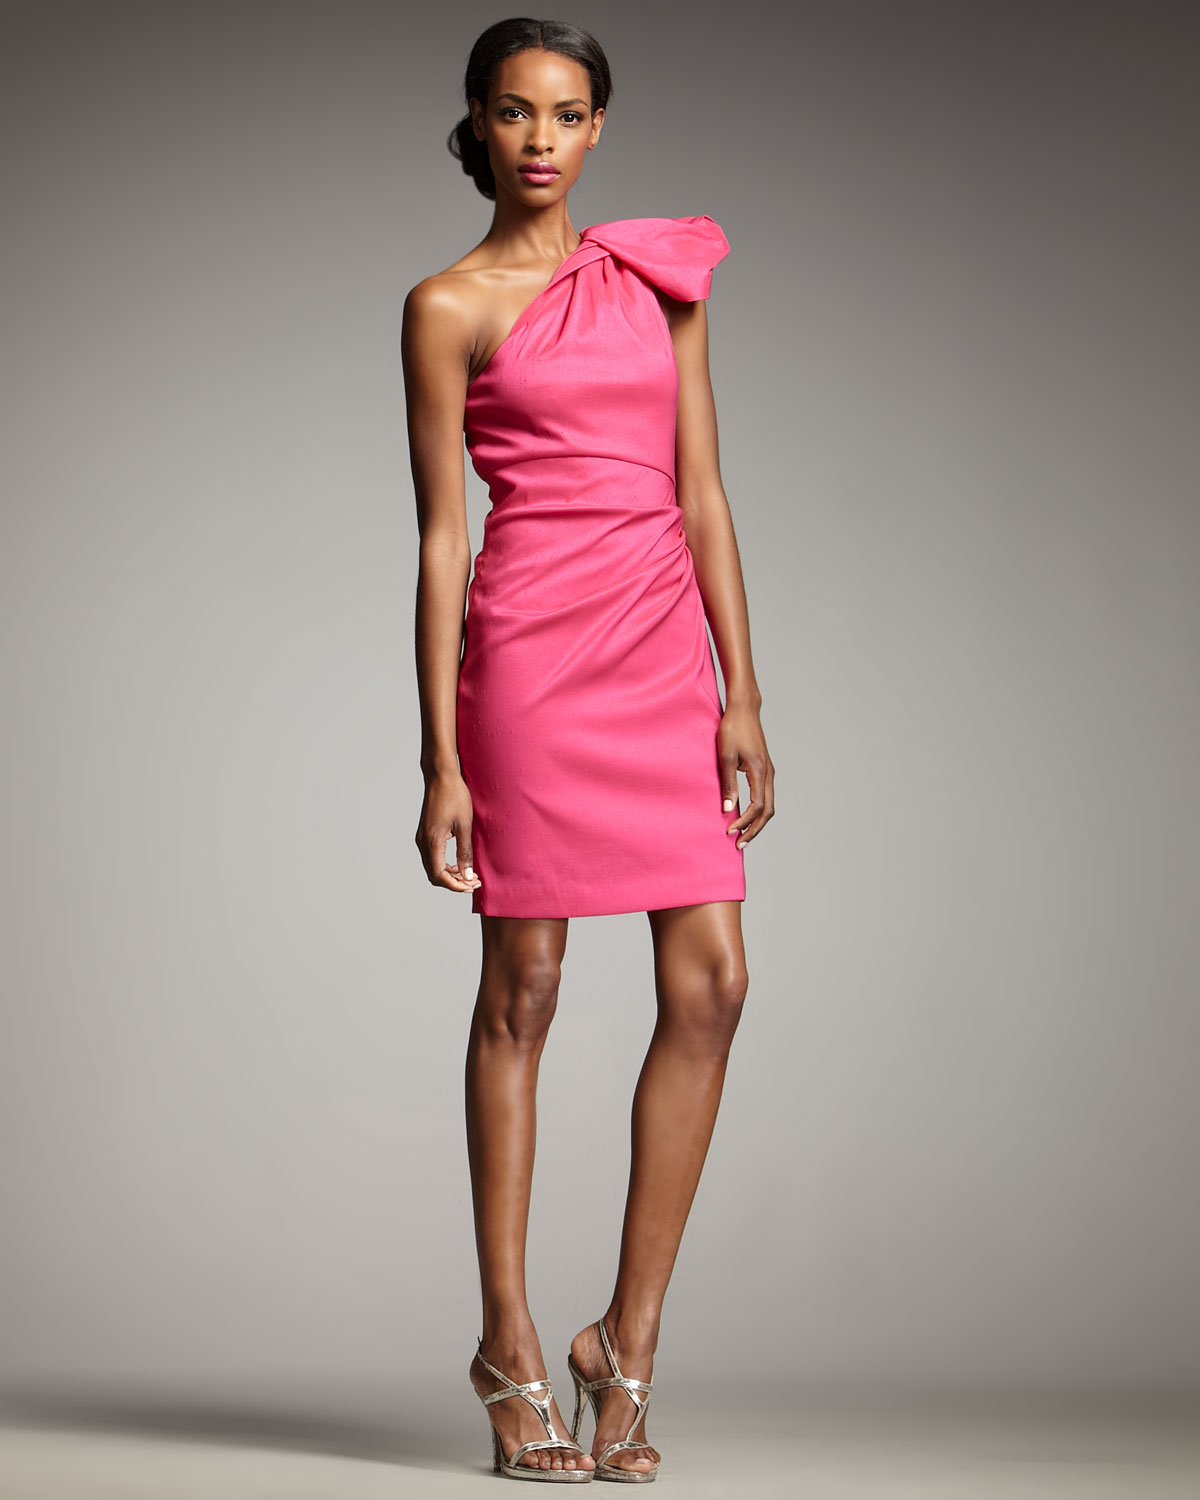 Badgley mischka One-shoulder Cocktail Dress in Pink | Lyst